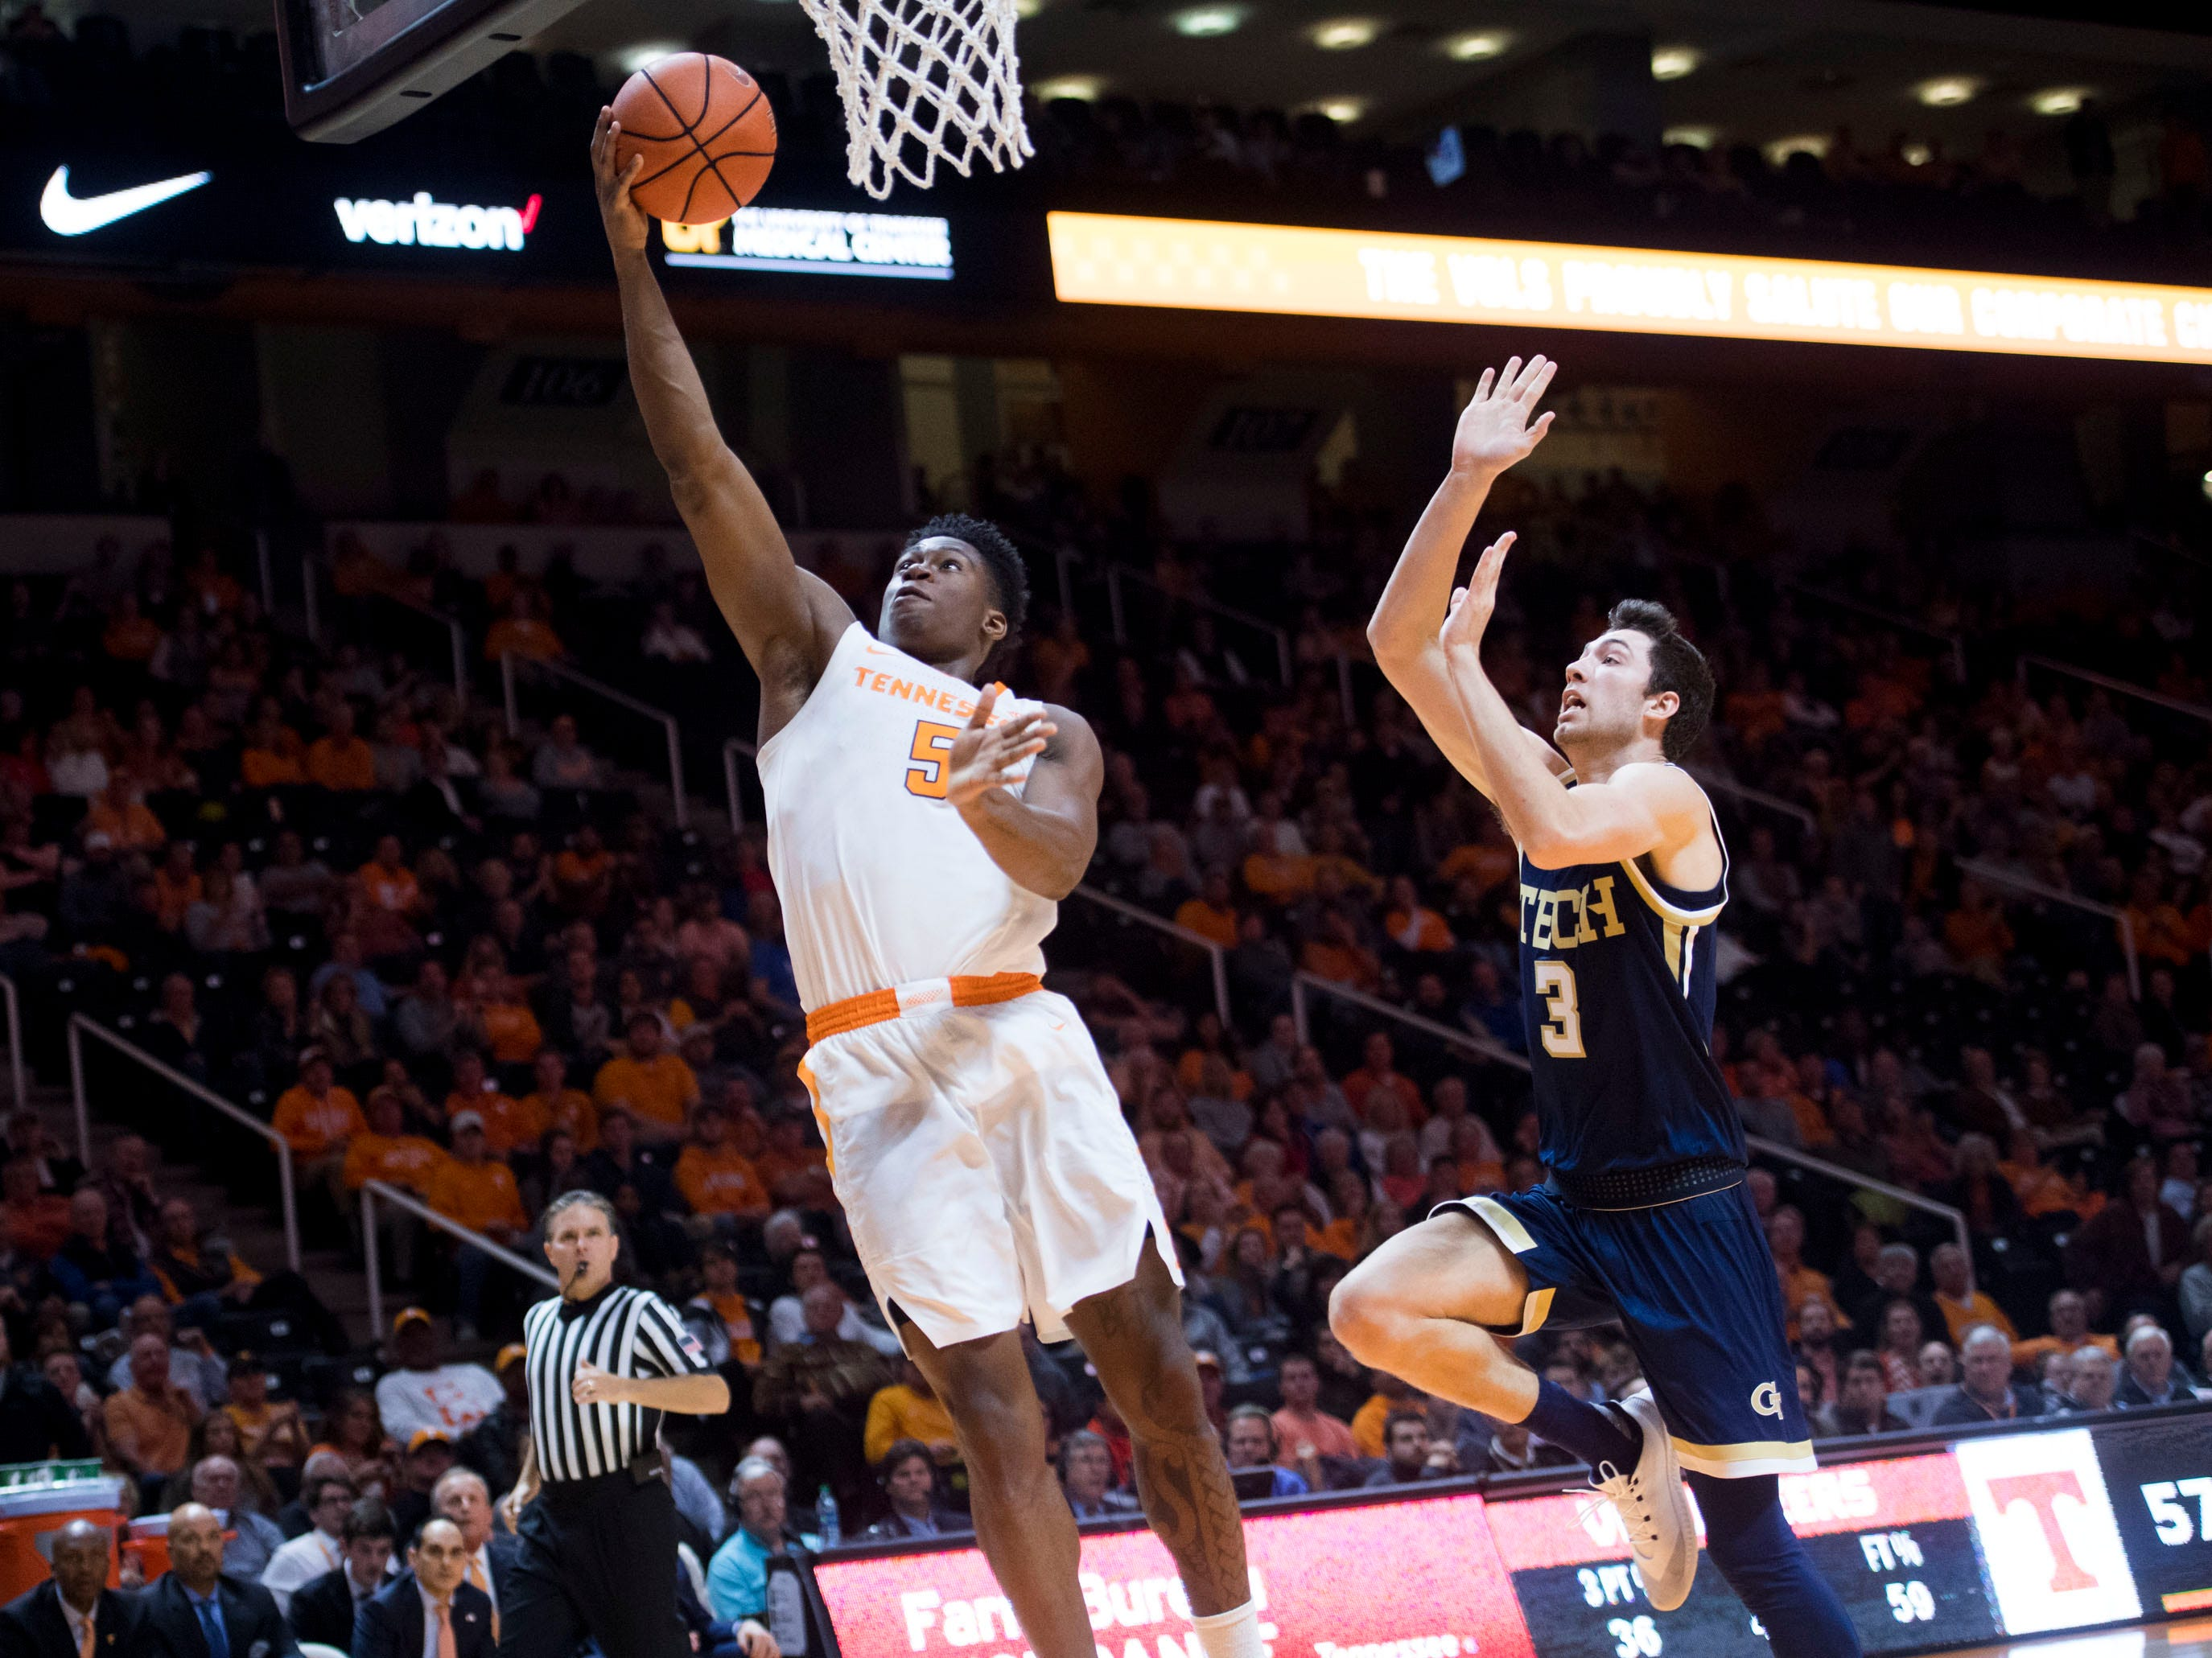 Tennessee's Admiral Schofield (5) scores while defended by Georgia Tech's Evan Cole (3) on Wednesday, November 14, 2018.